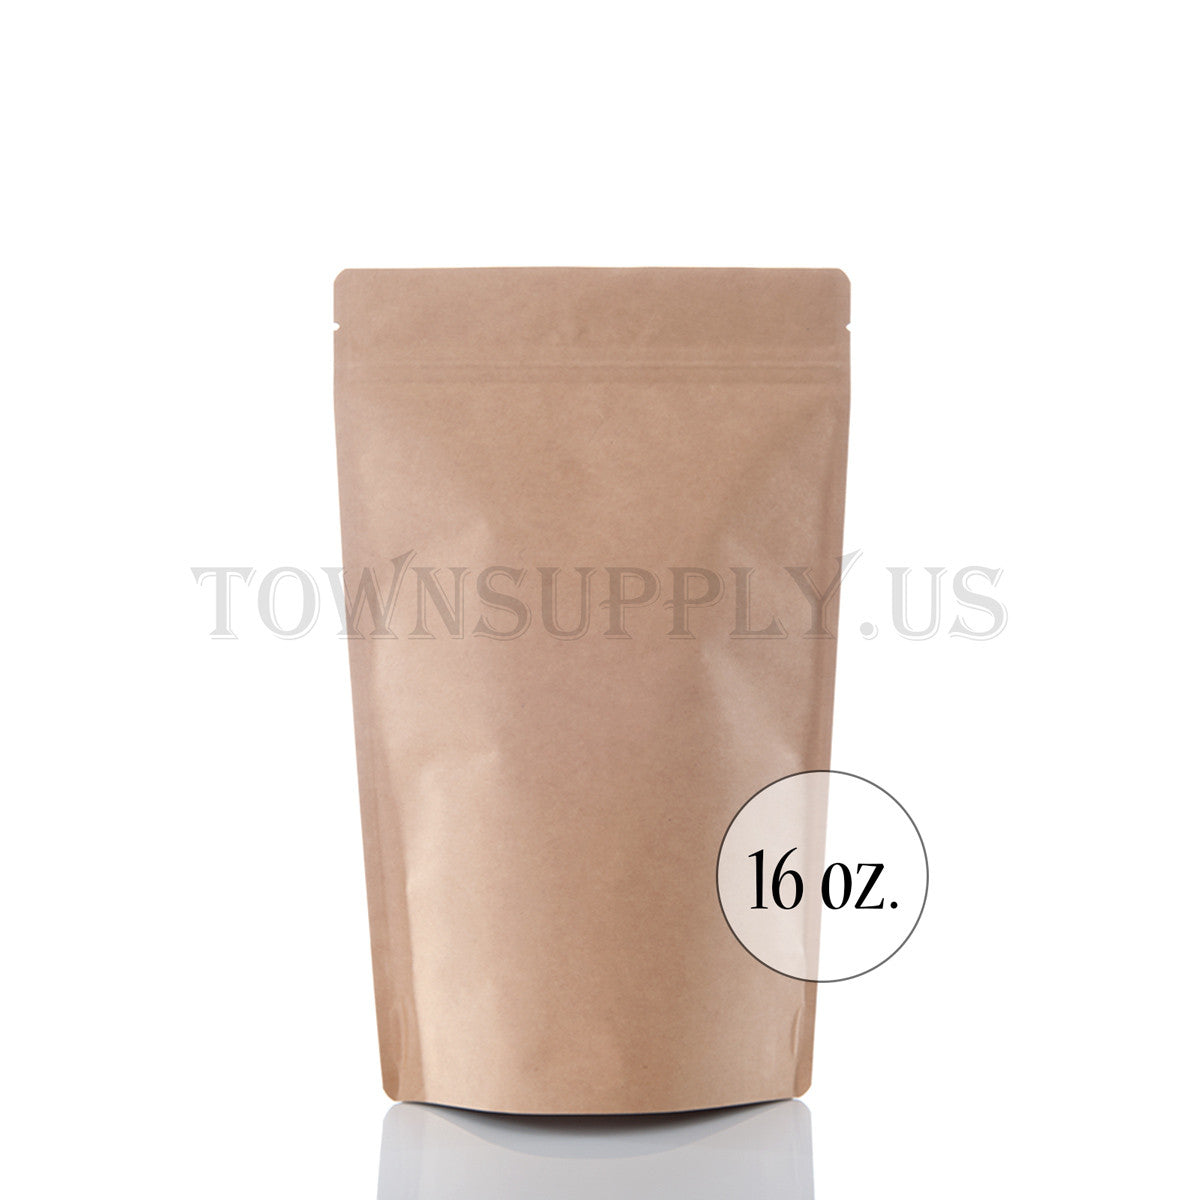 Kraft foil lined stand up pouch, 16 oz. bags - Town Supply